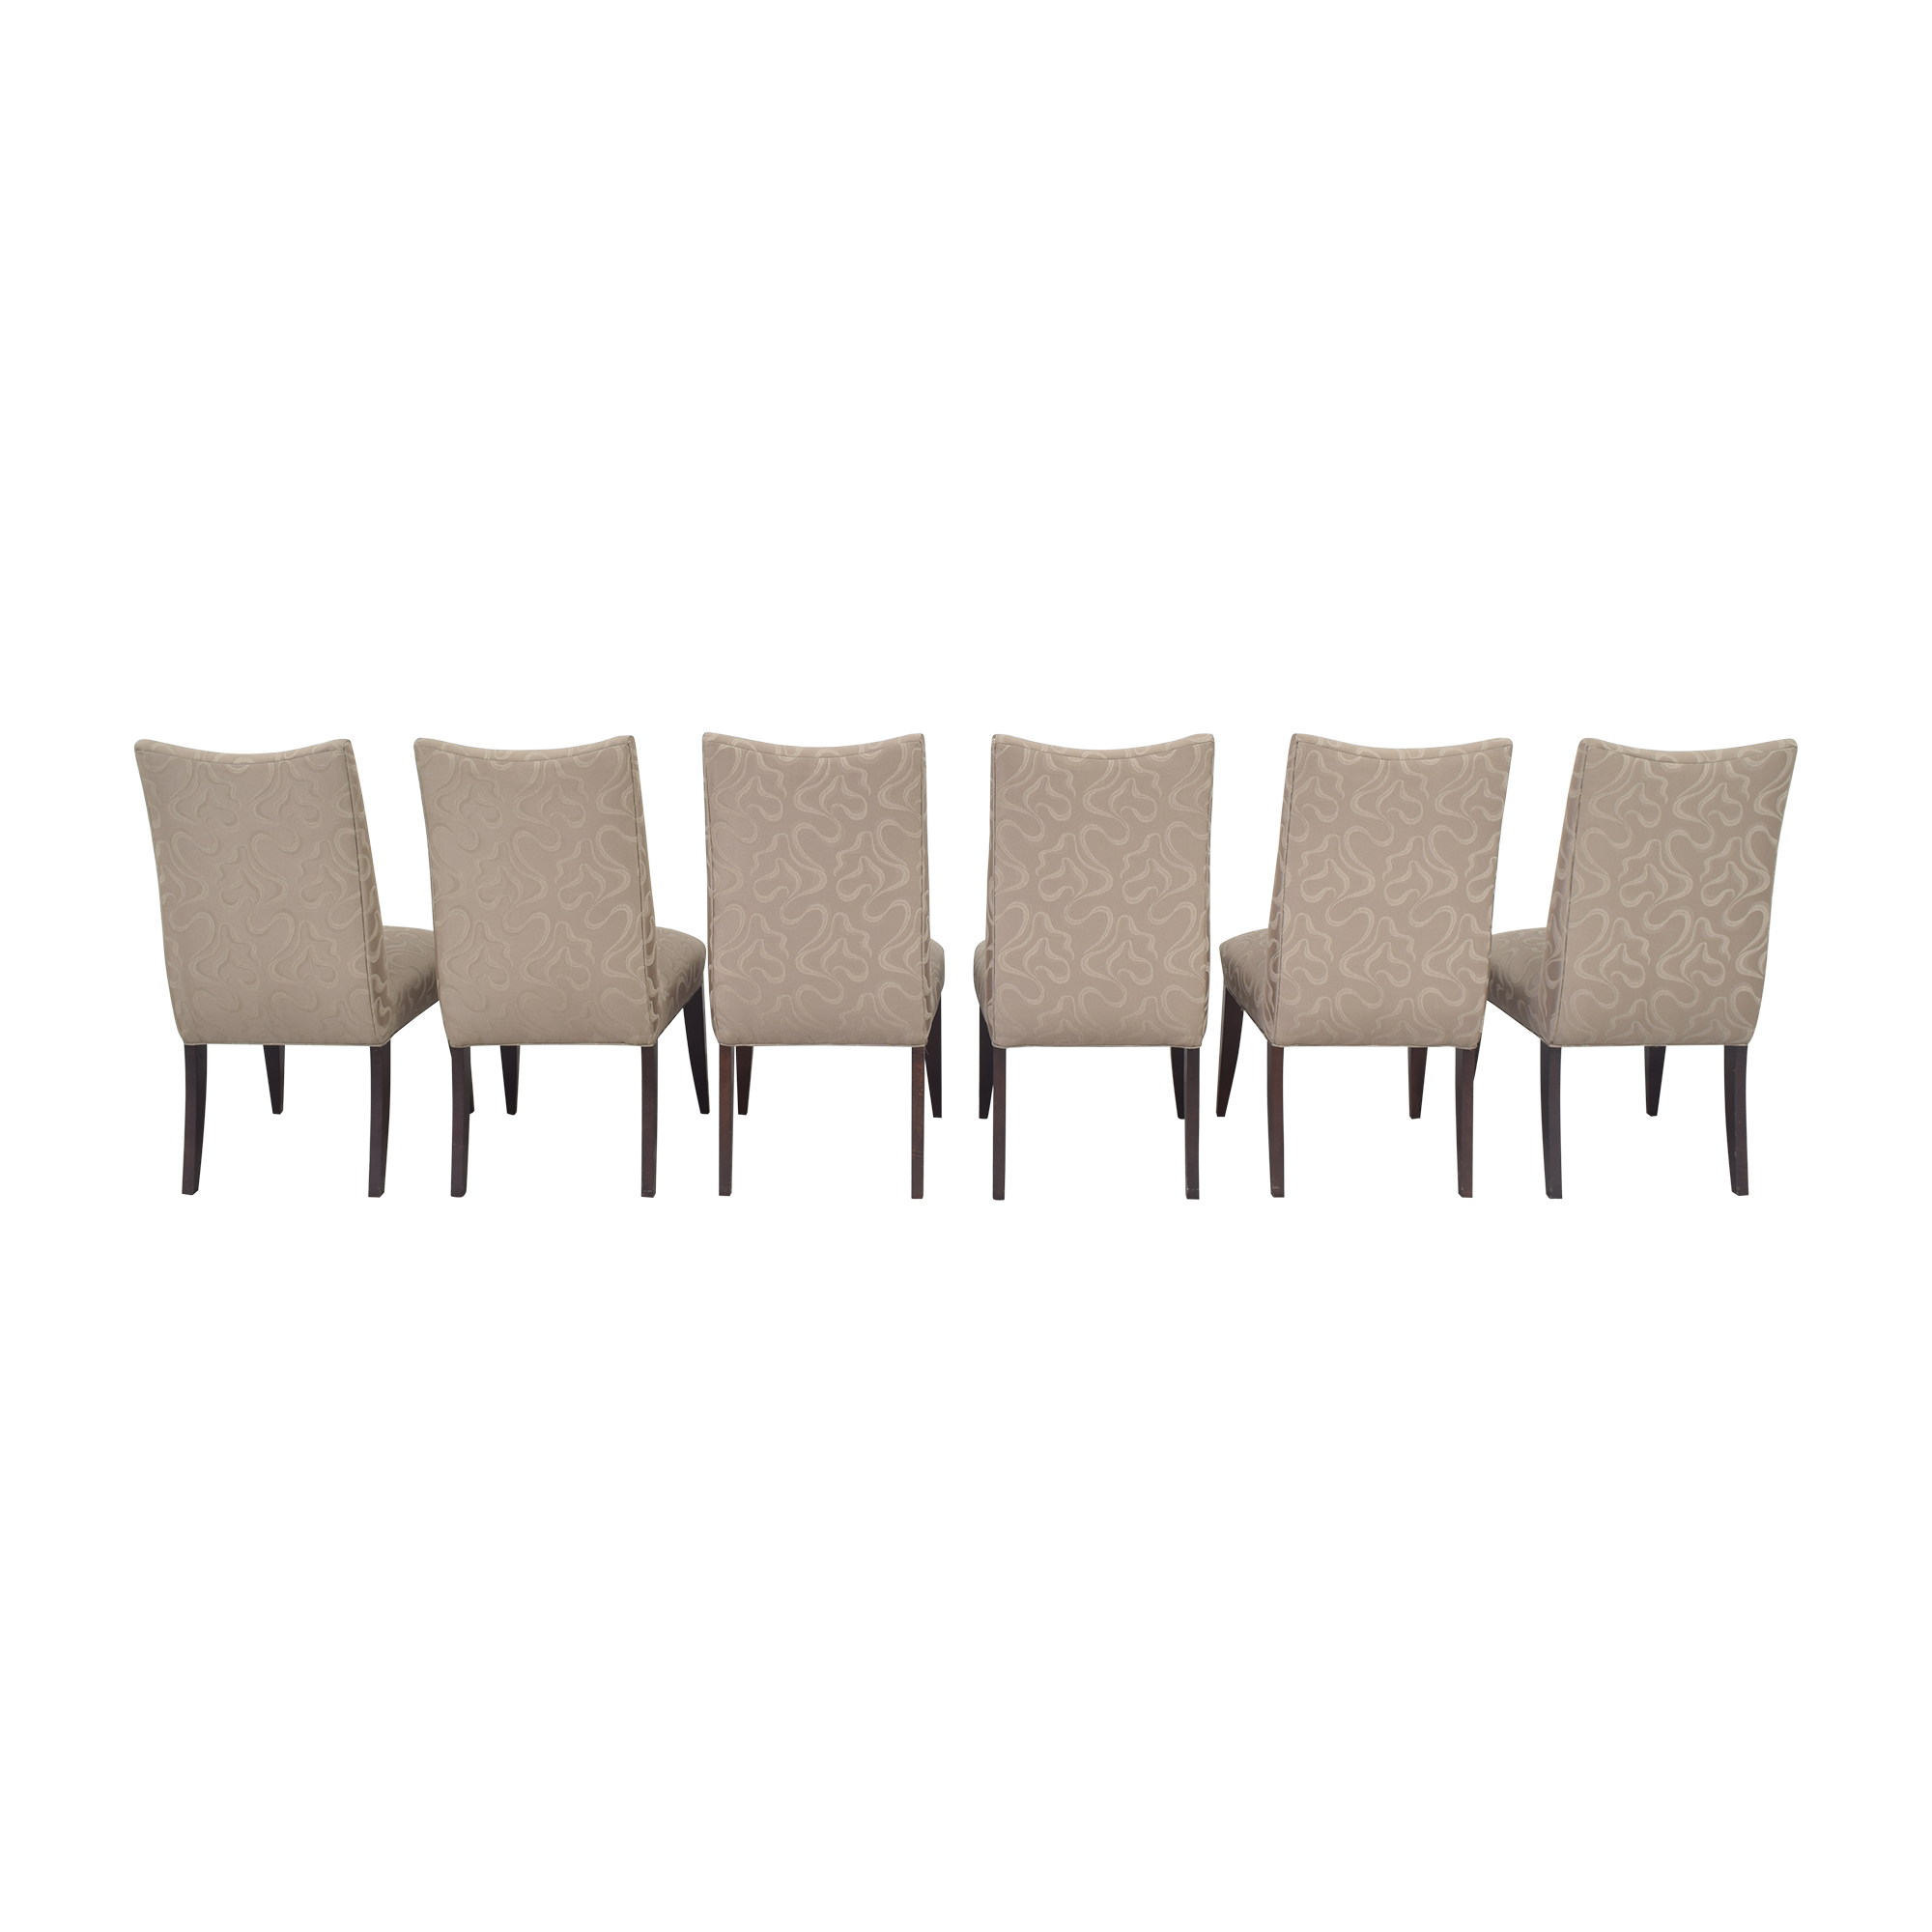 Precedent Furniture Precedent Furniture Upholstered Dining Chairs used